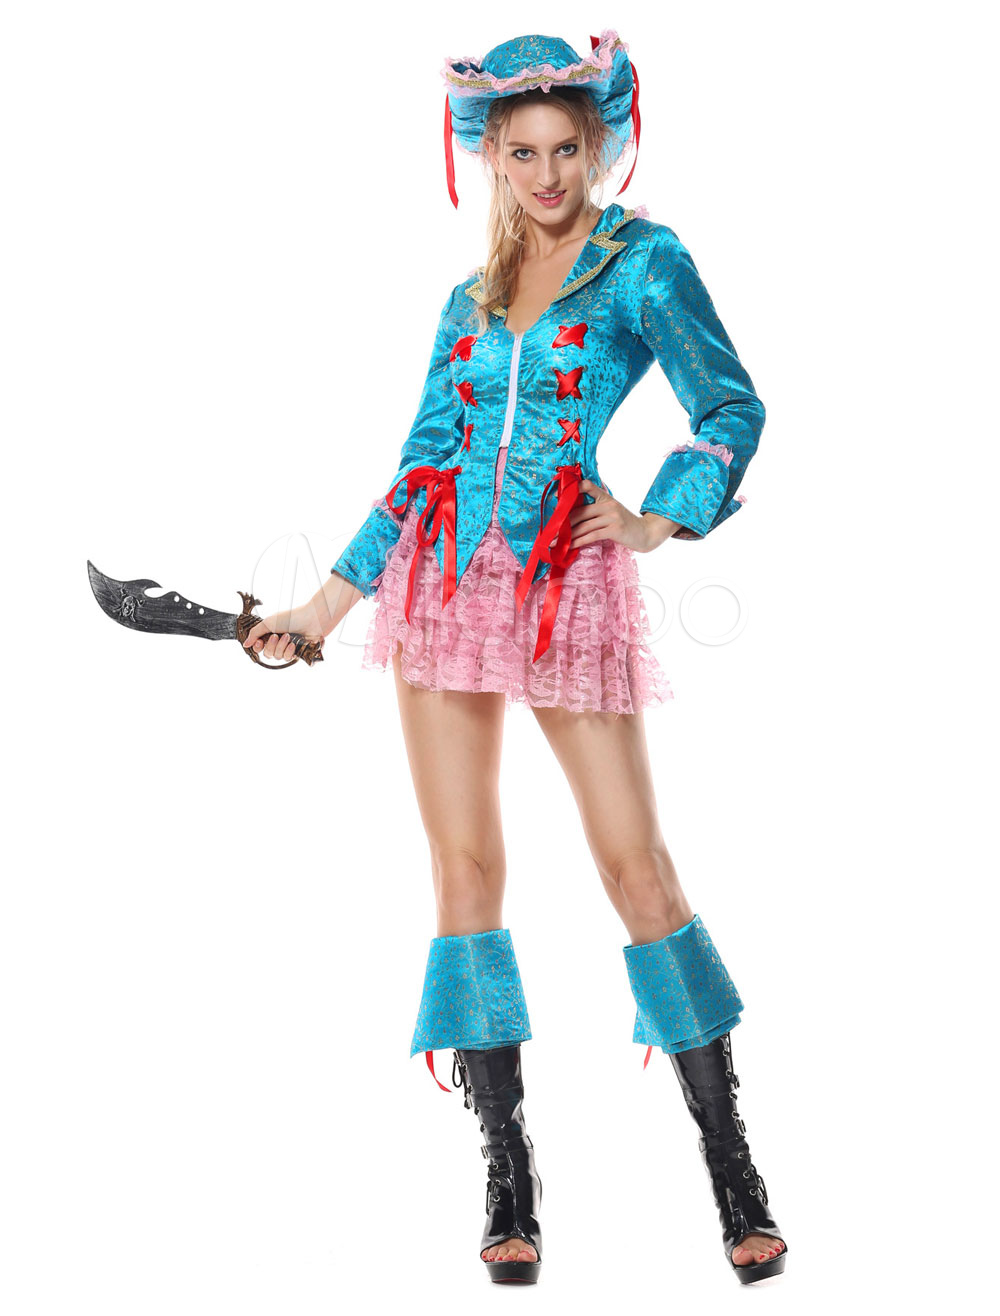 Buy Pirate Costume Halloween Blue Women Long Sleeve Dresses Costume Outfit for $33.59 in Milanoo store